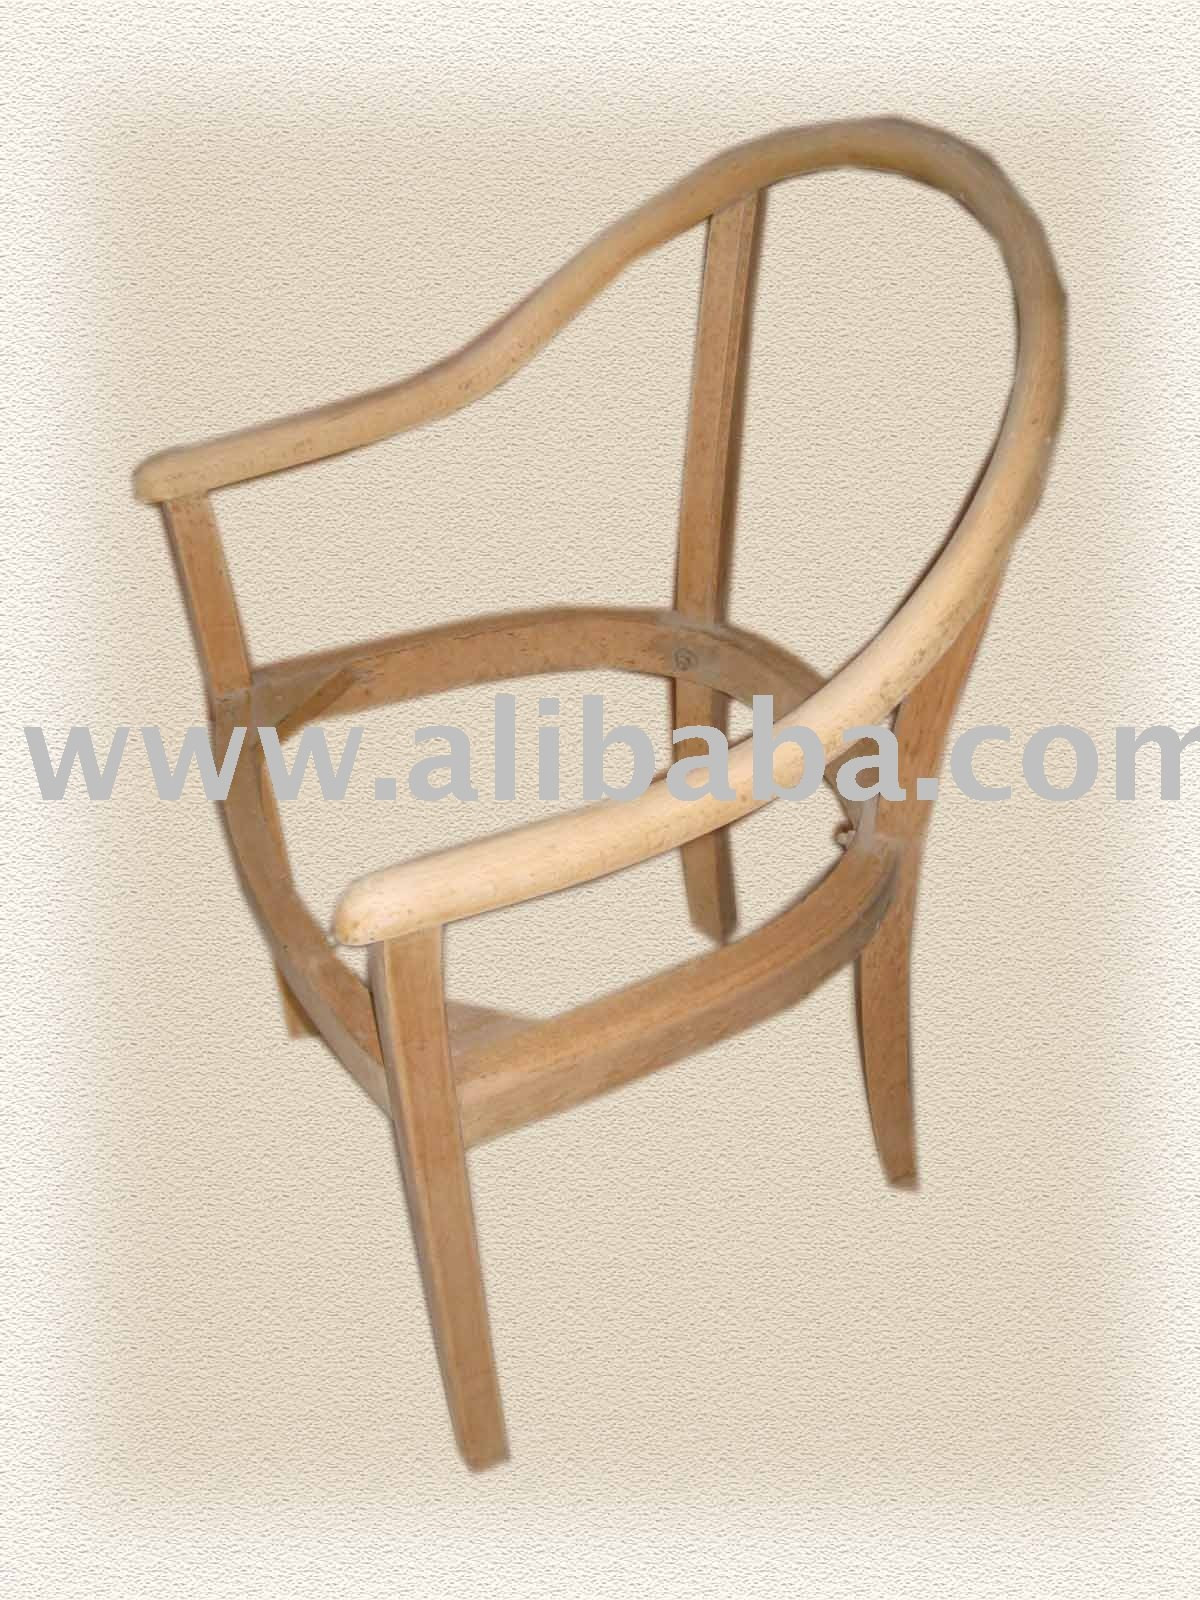 Unfinished Chair Frames, Unfinished Chair Frames Suppliers and ...